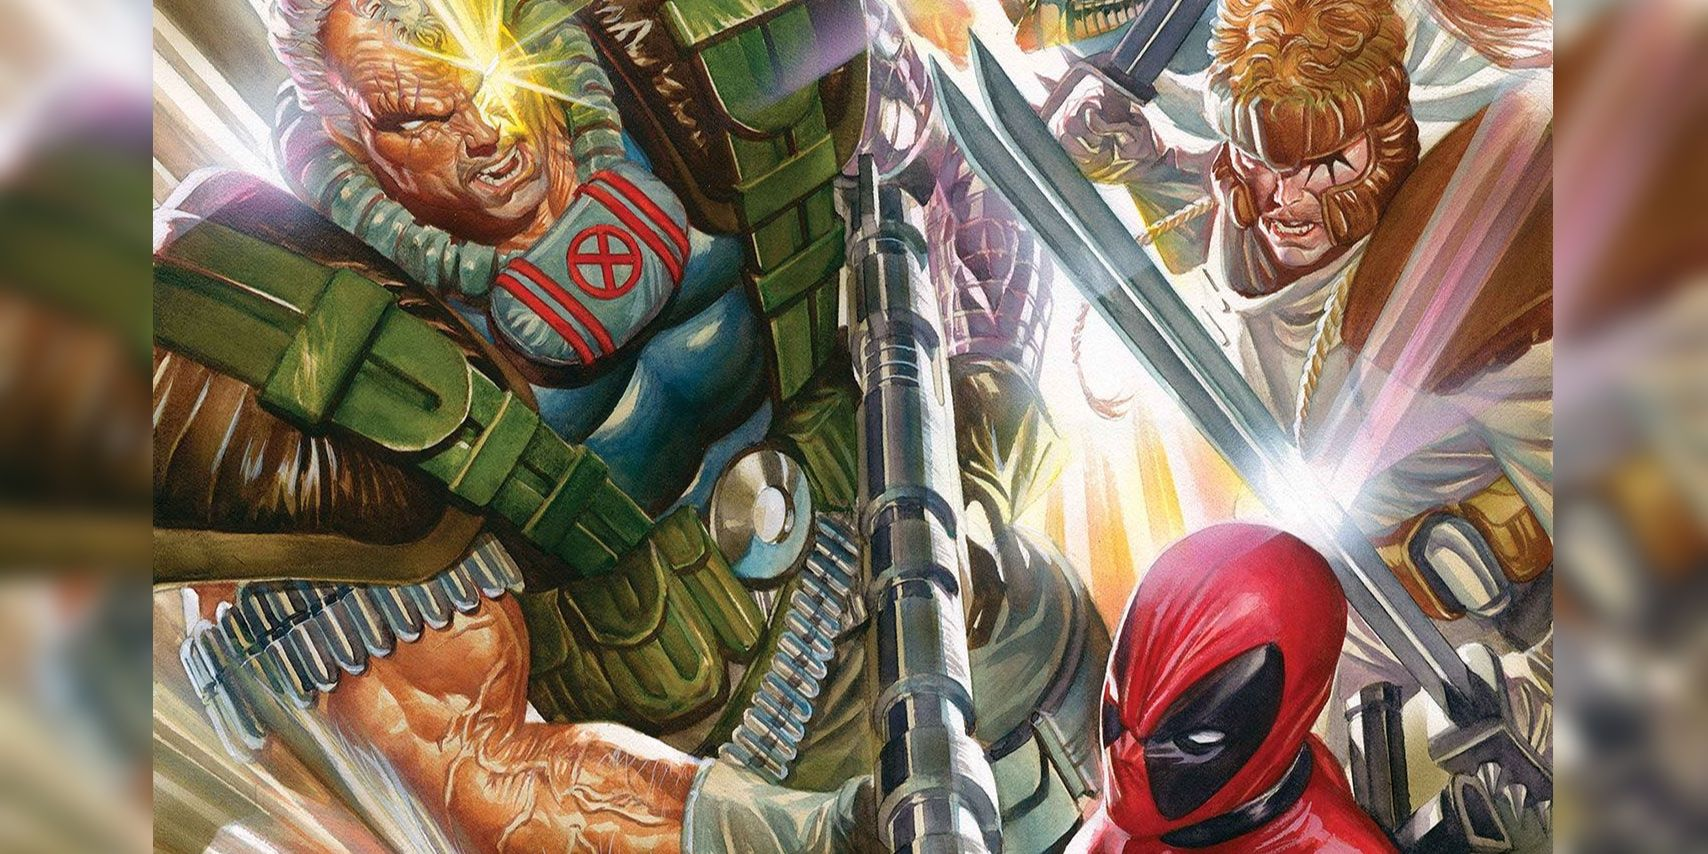 Deadpool & Cable Get 'Realistic' Art From Alex Ross | Screen Rant